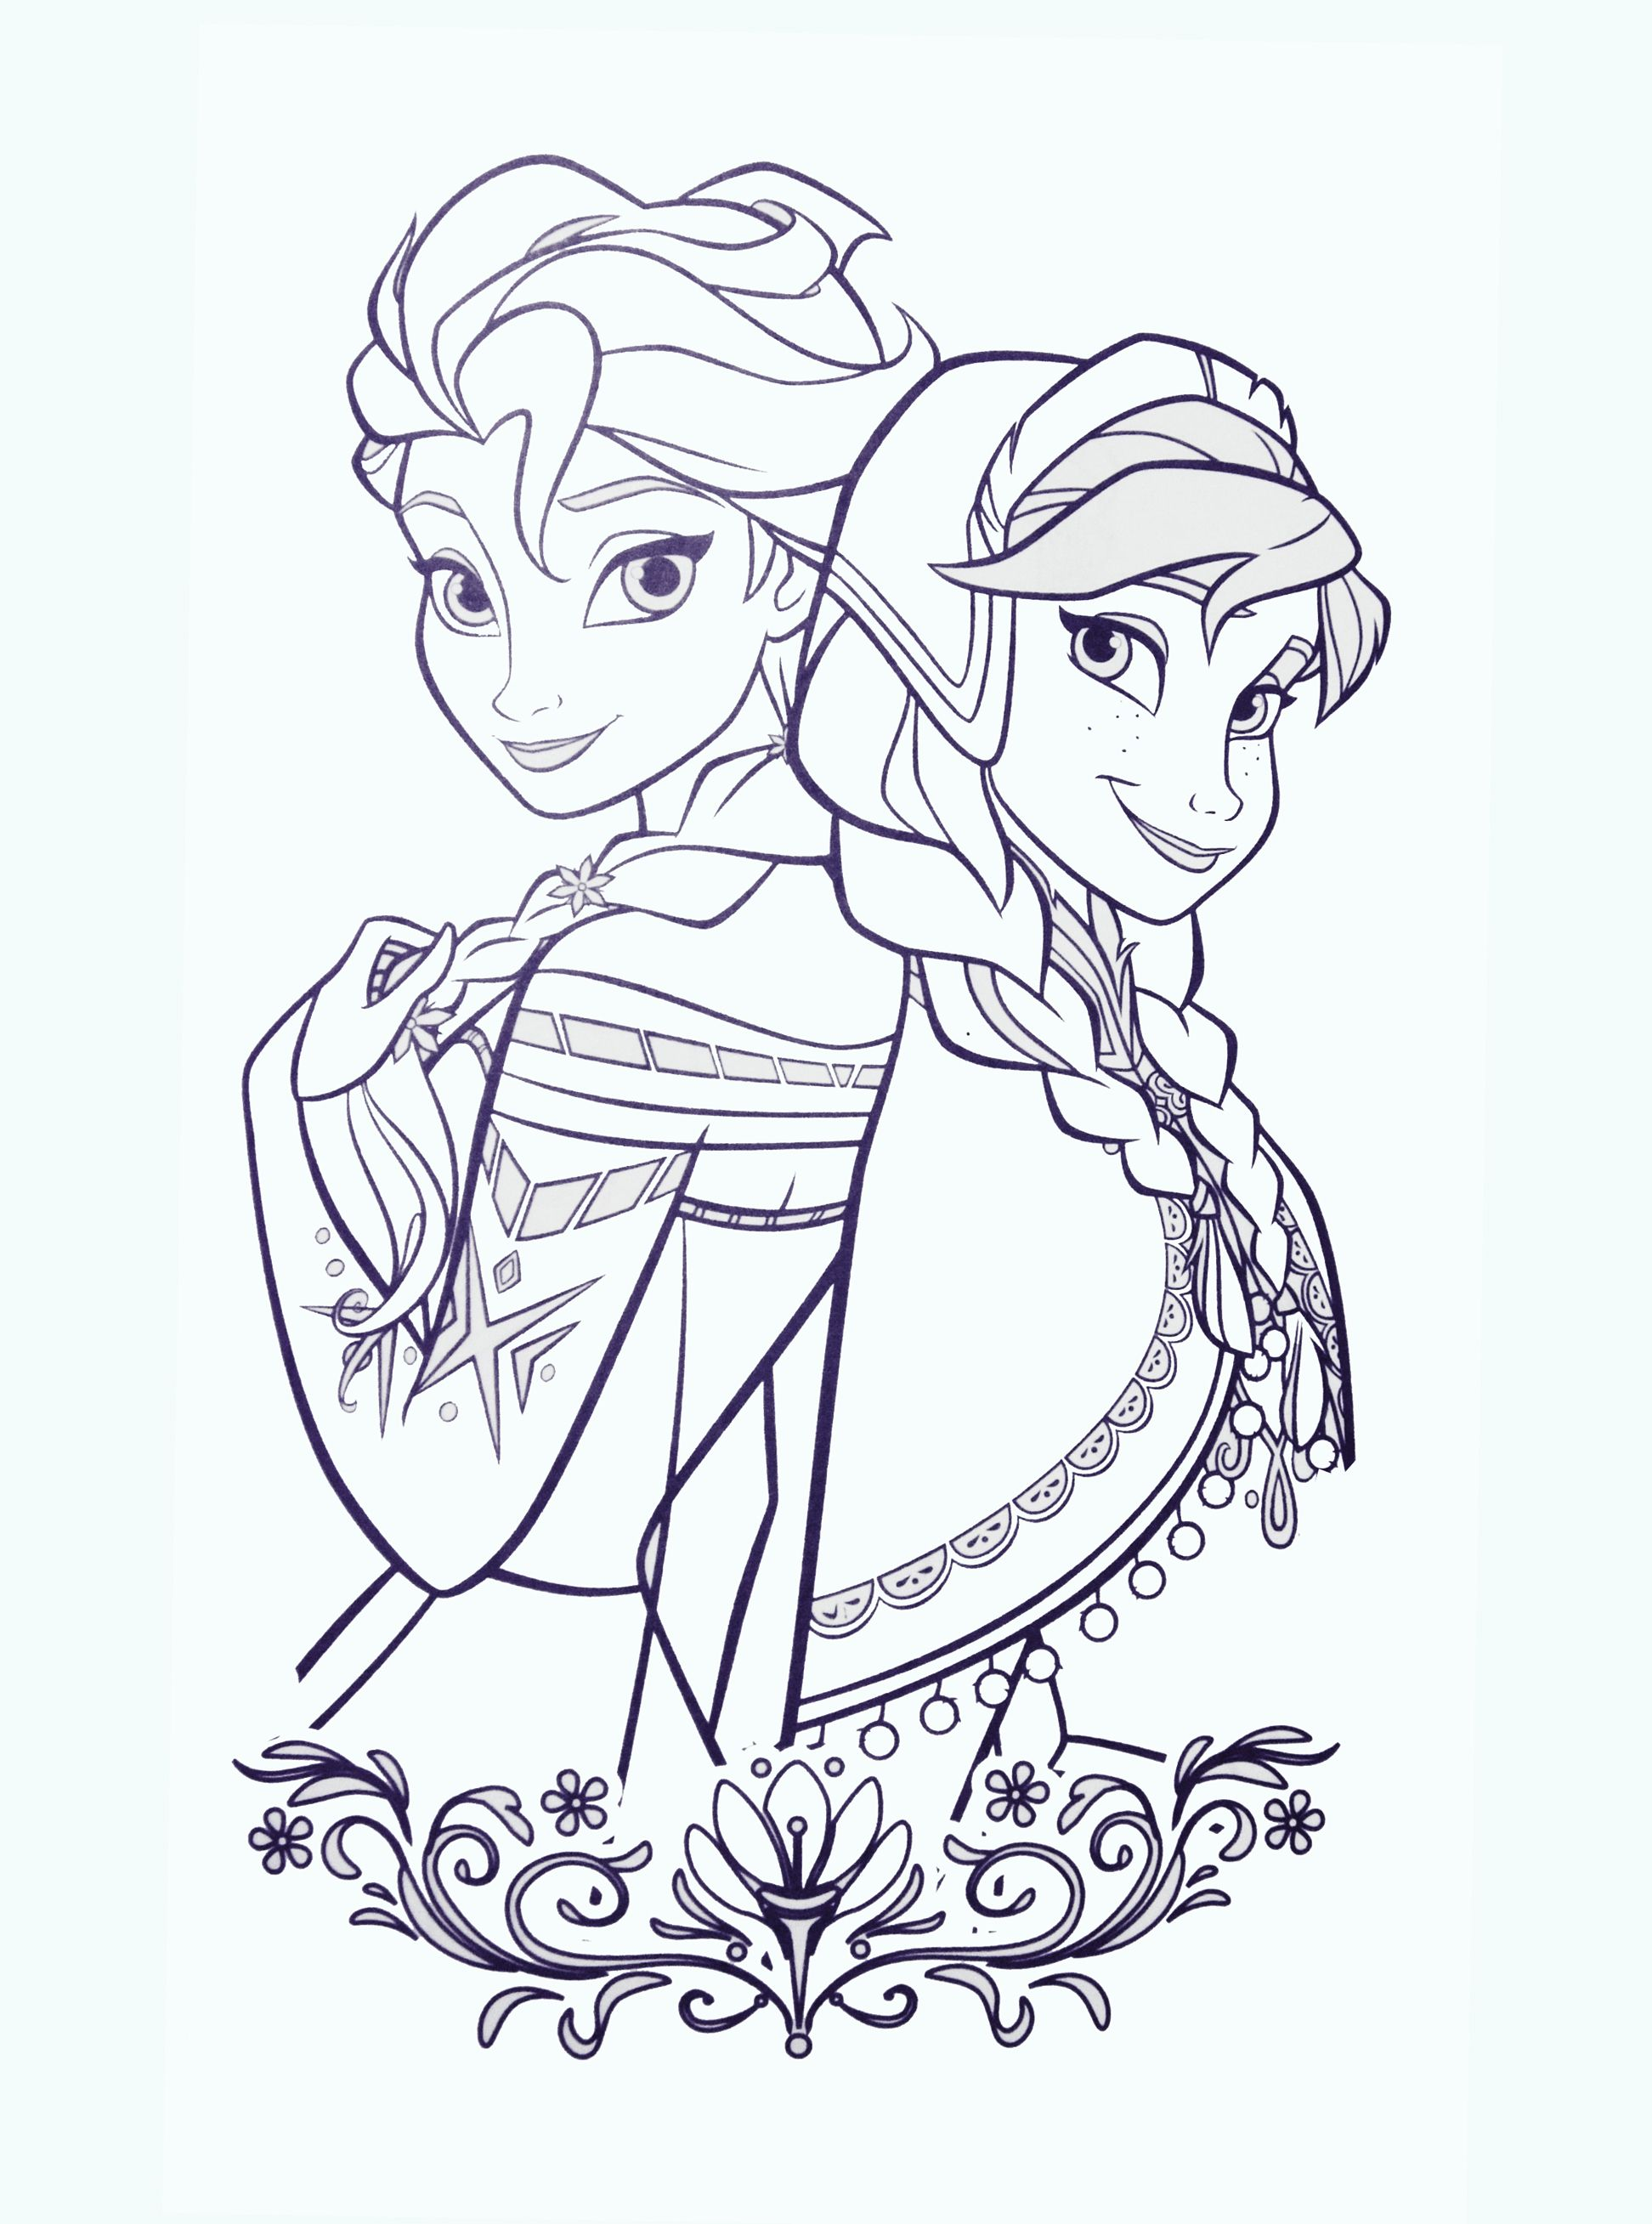 Printable Anna And Elsa Disney Frozen Coloring Pages For